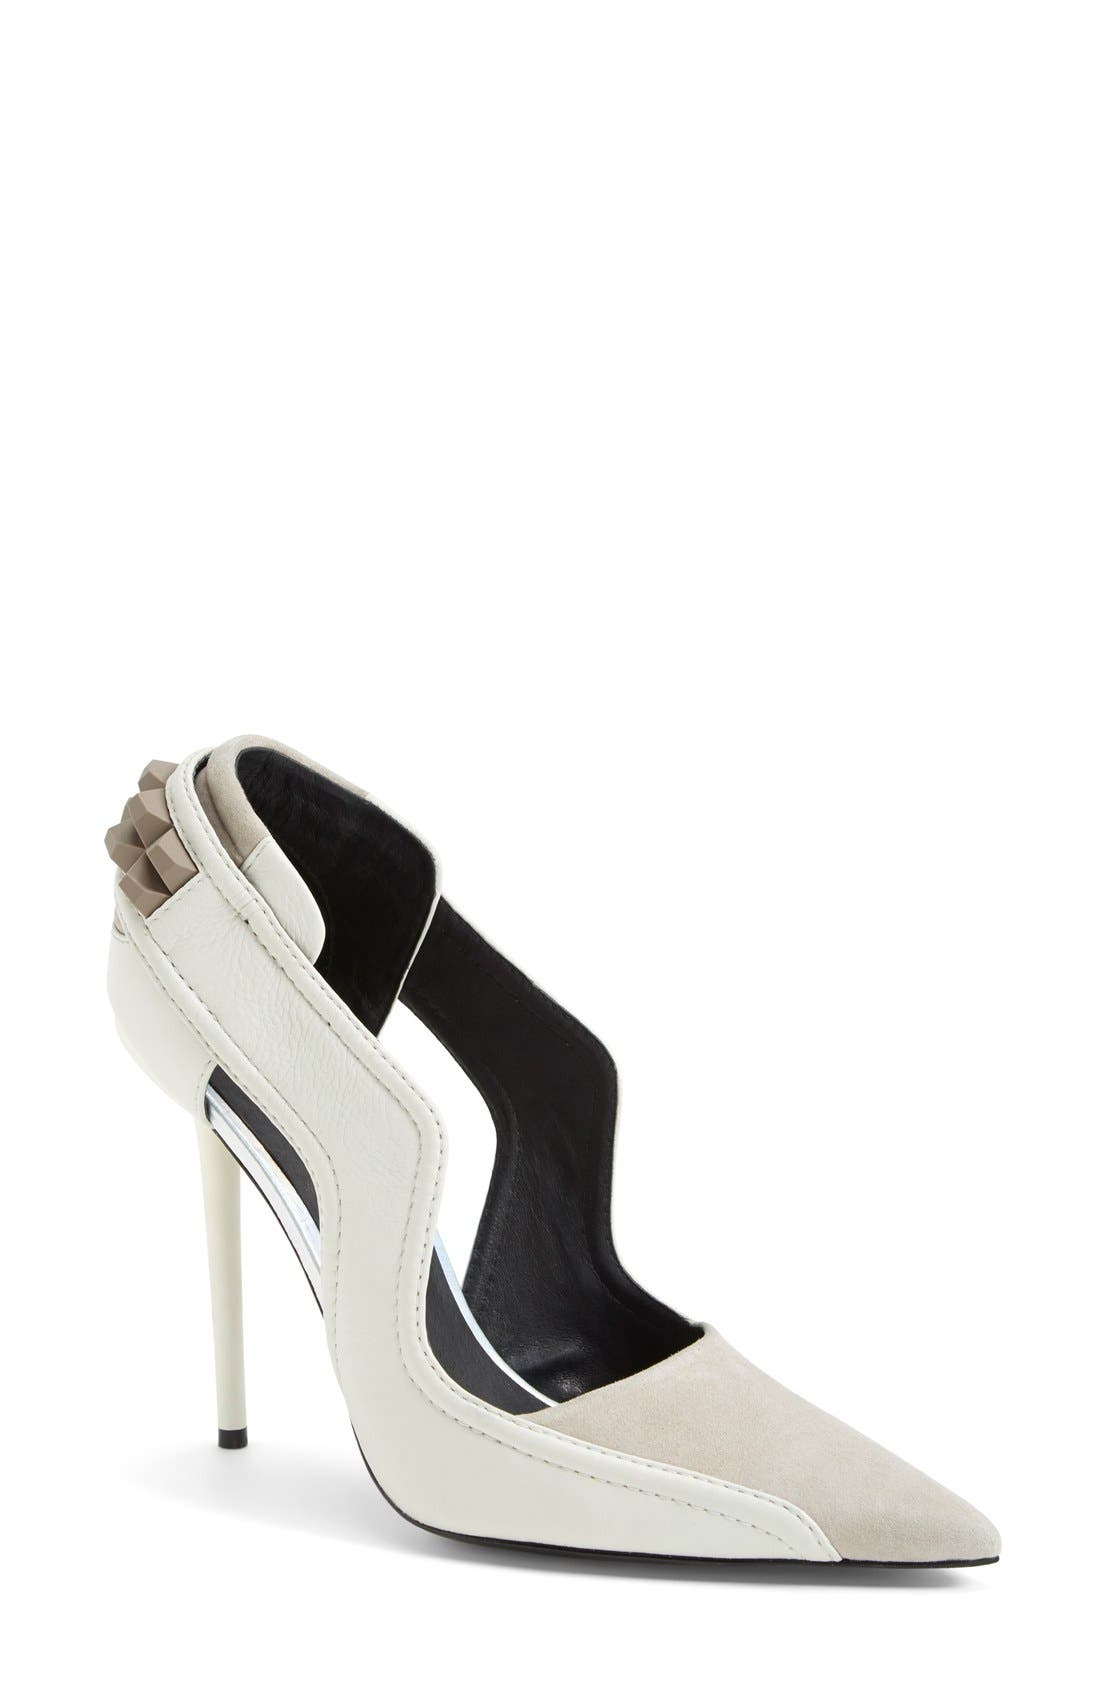 Alternate Image 1 Selected - L.A.M.B. 'Enforce' Leather & Suede Pointy Toe Pump (Women)